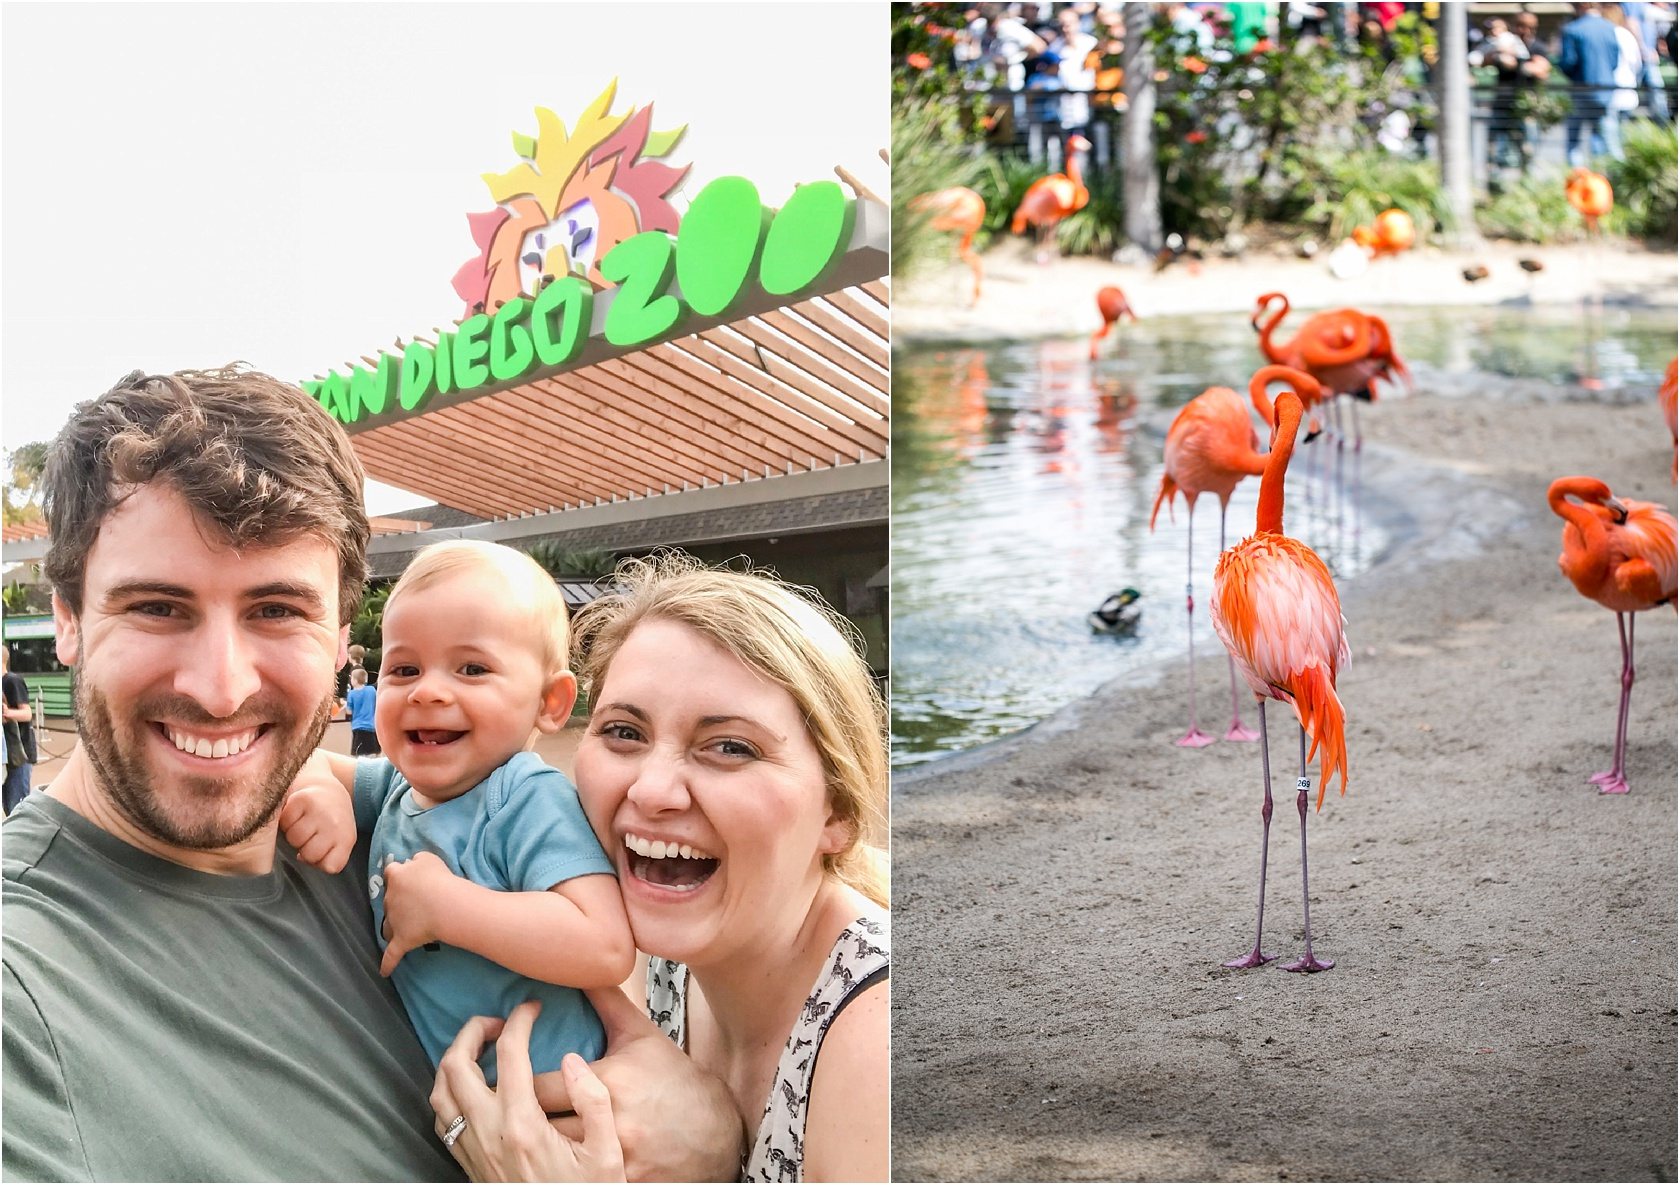 We all loved the zoo!